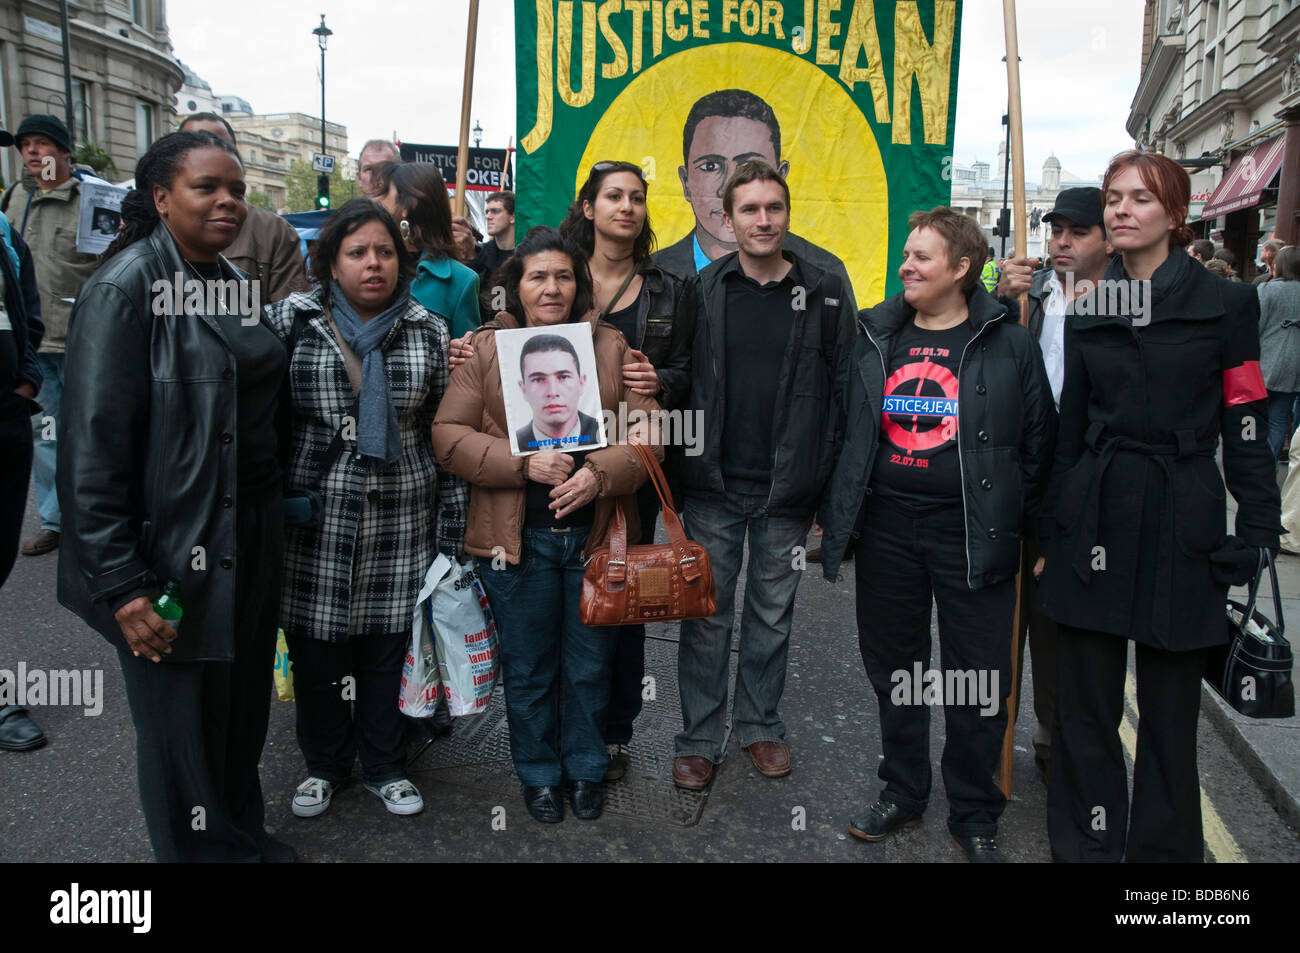 United Friends and Families Protest Custody Deaths in Whitehall march. Family of Jean Charles de Menezes and supporters. - Stock Image